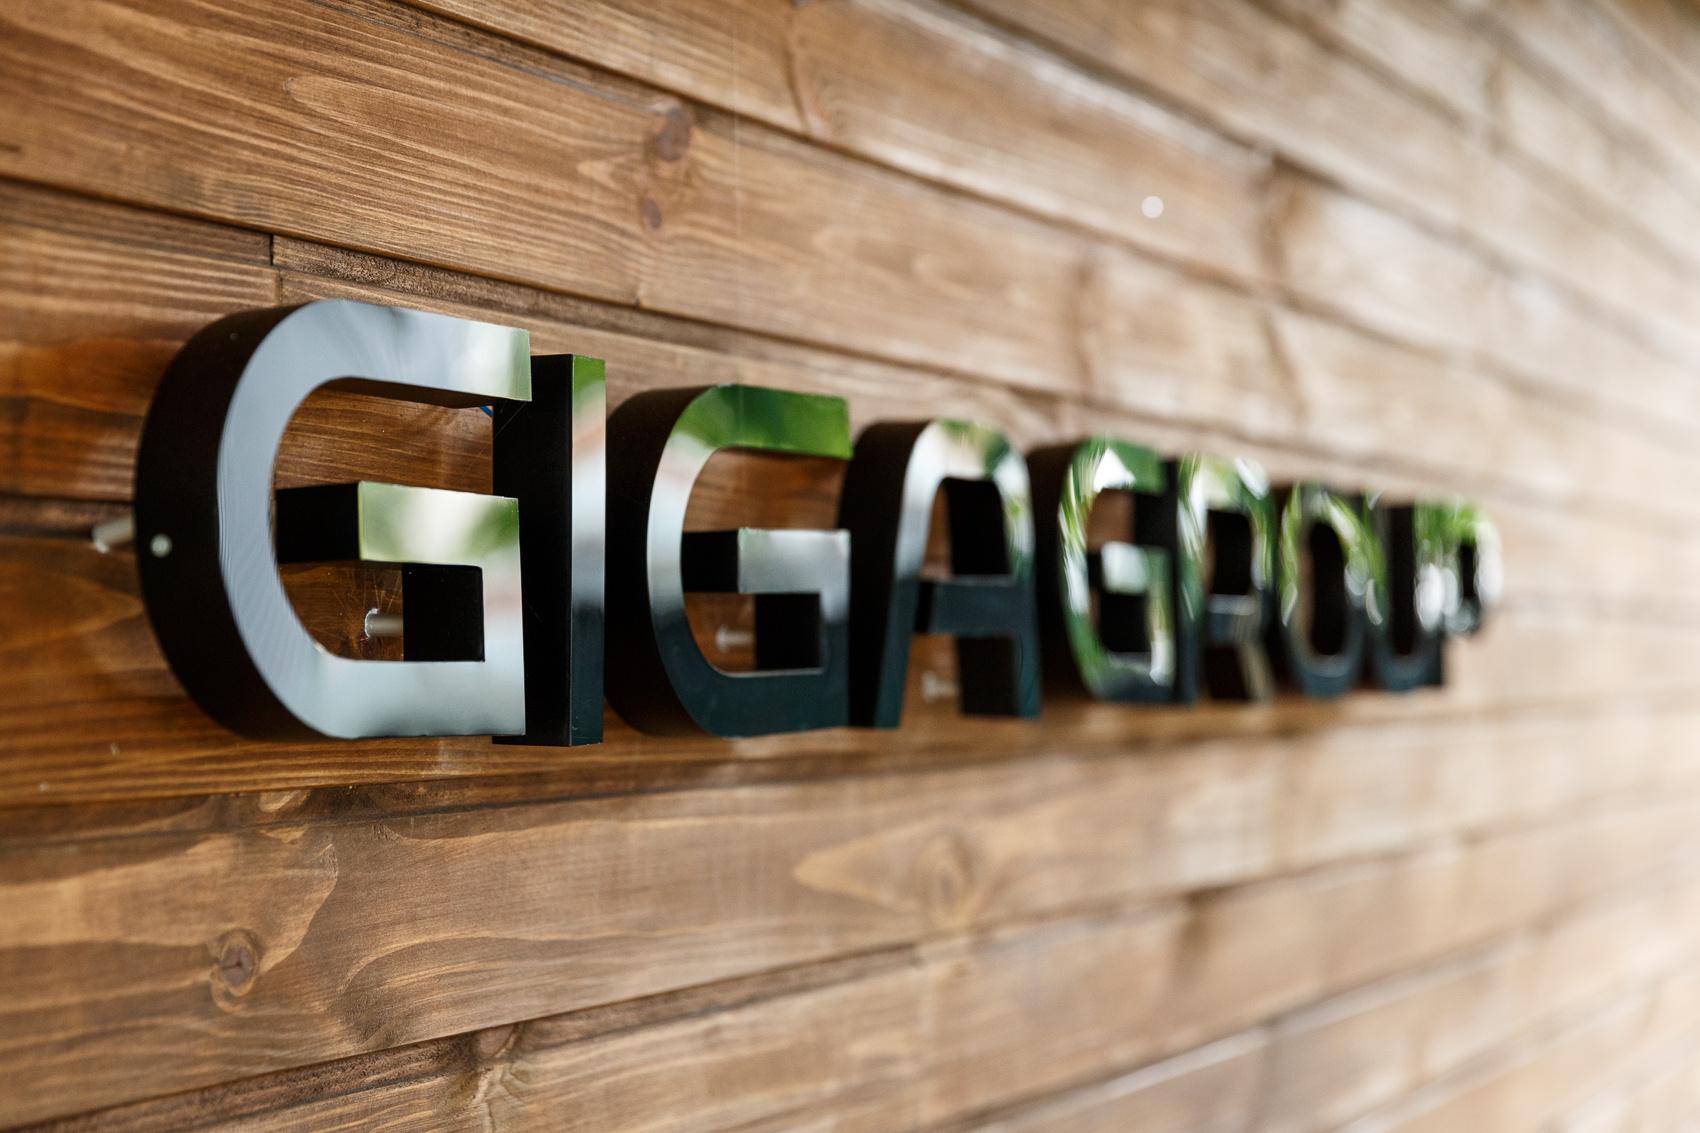 GIGAGROUP